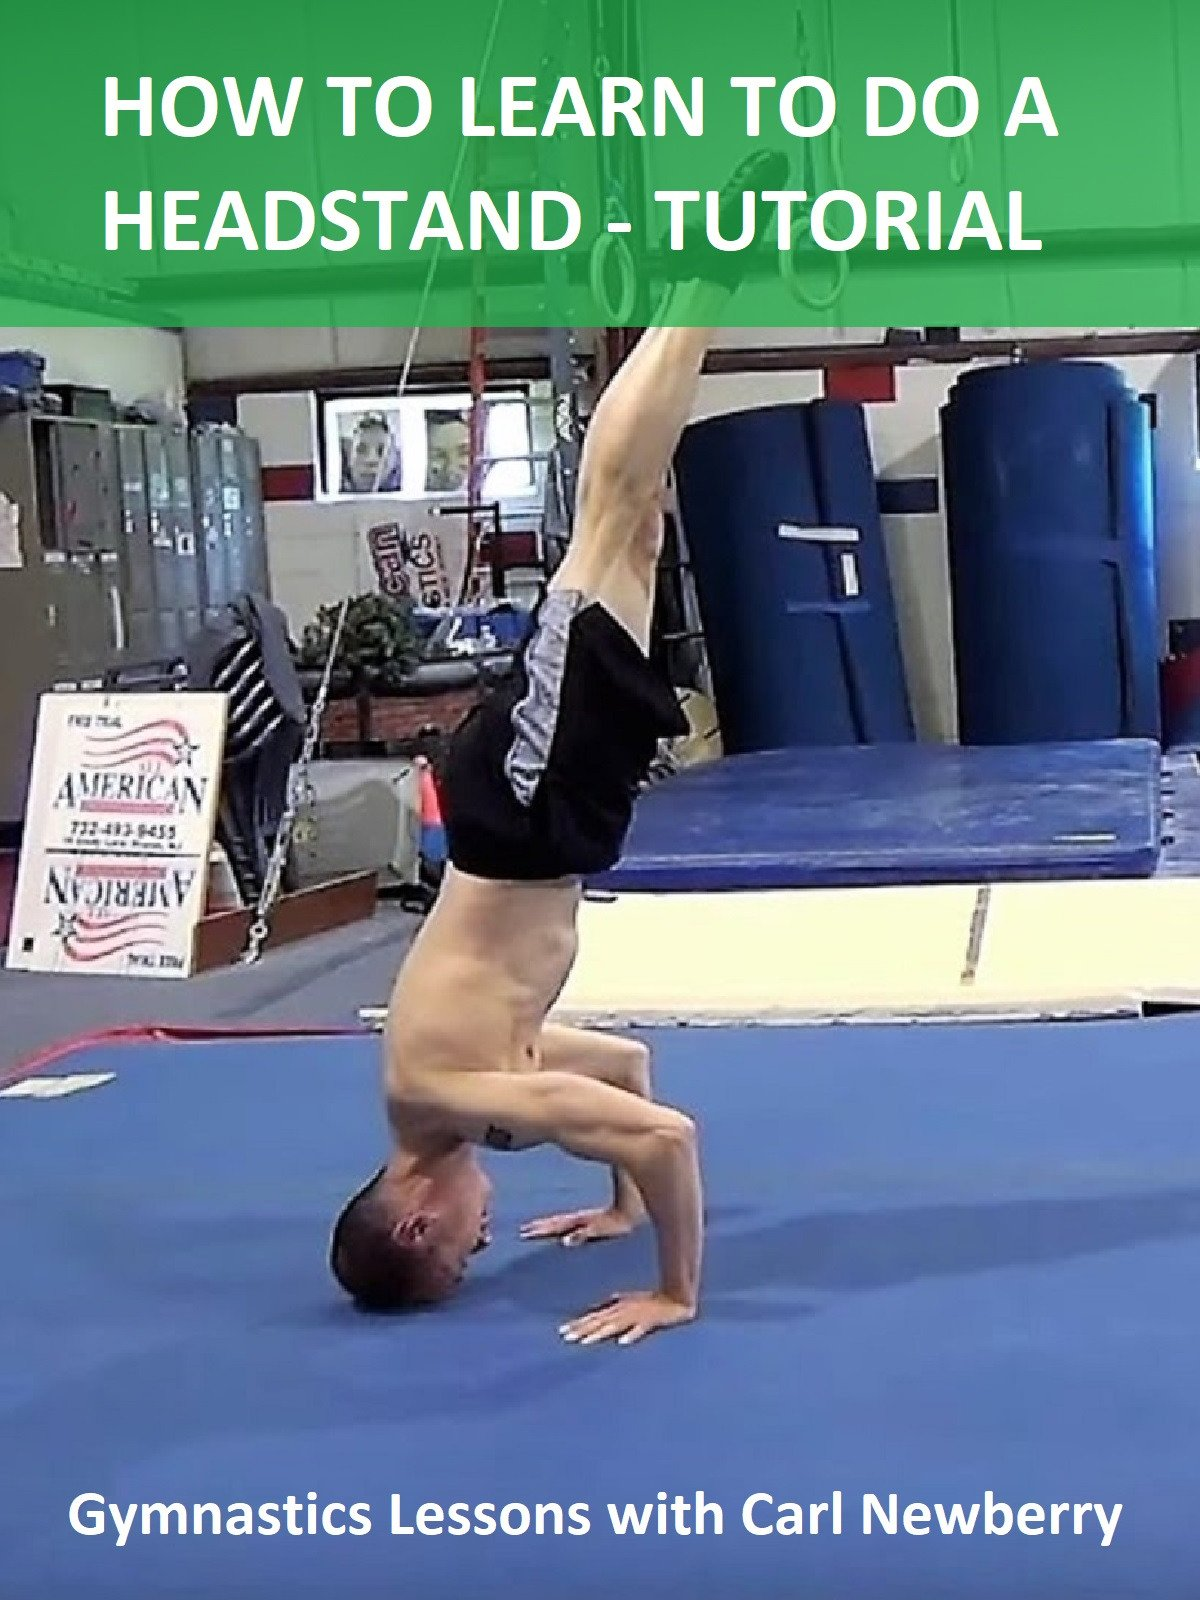 How To Learn To Do a Headstand